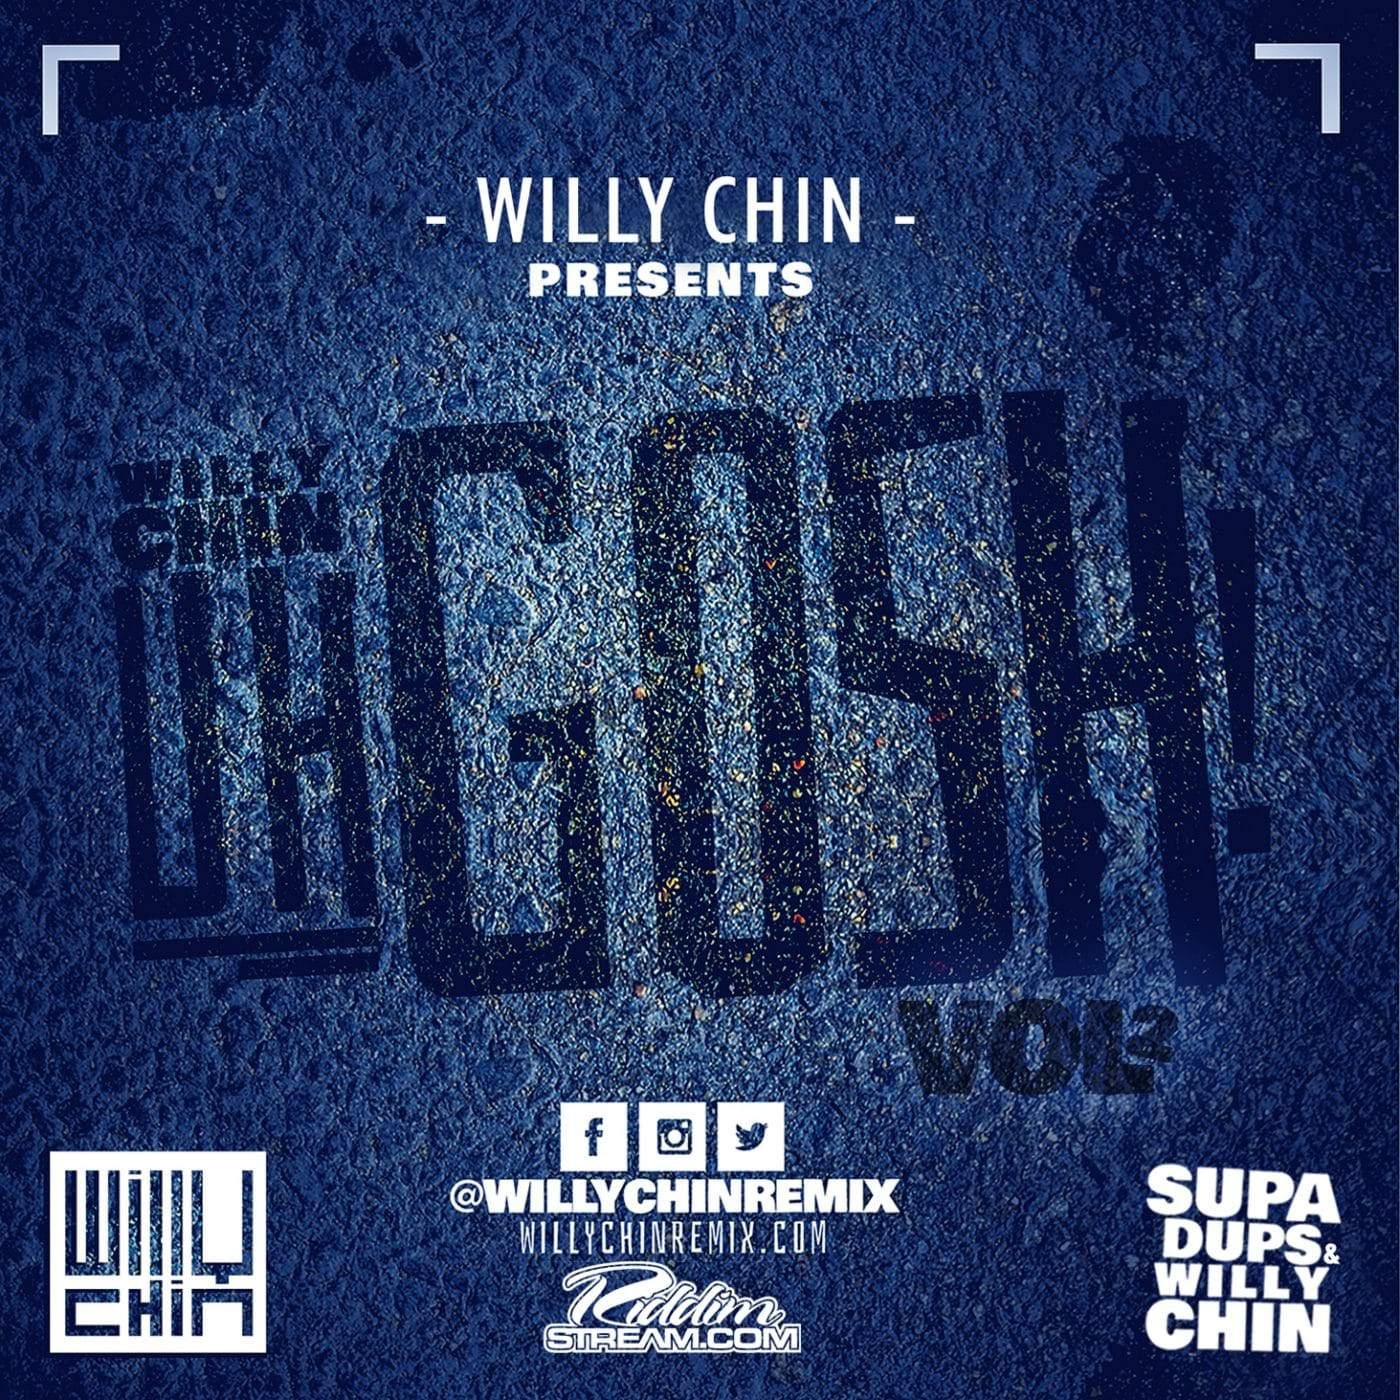 Uh Gosh v2 by Willy Chin and Supa Dups - Black Chiney 2015 Soca Mix